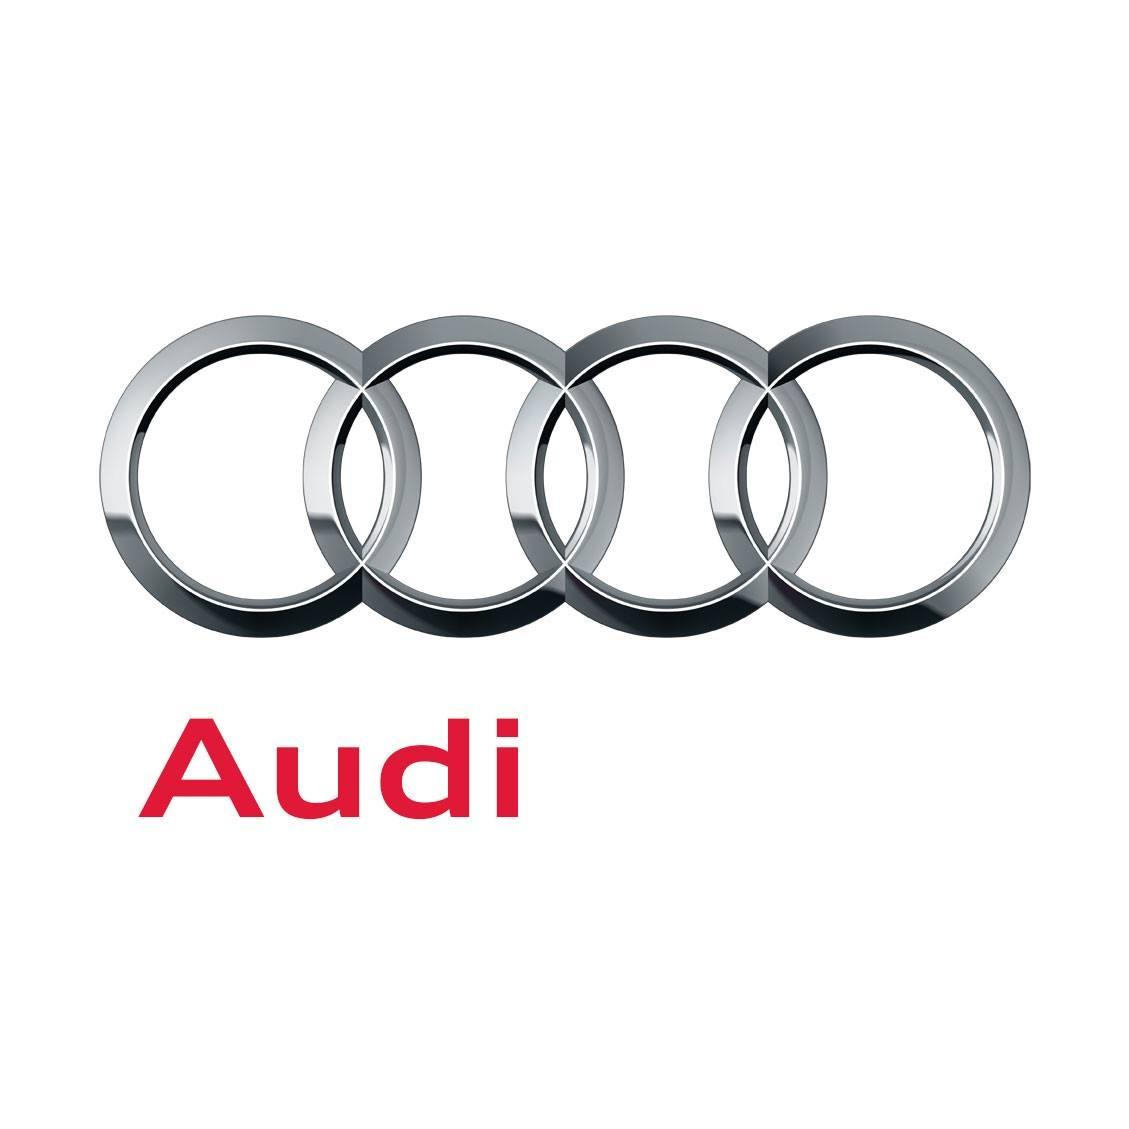 Audi Wilsonville Coupons Near Me In Wilsonville 8coupons